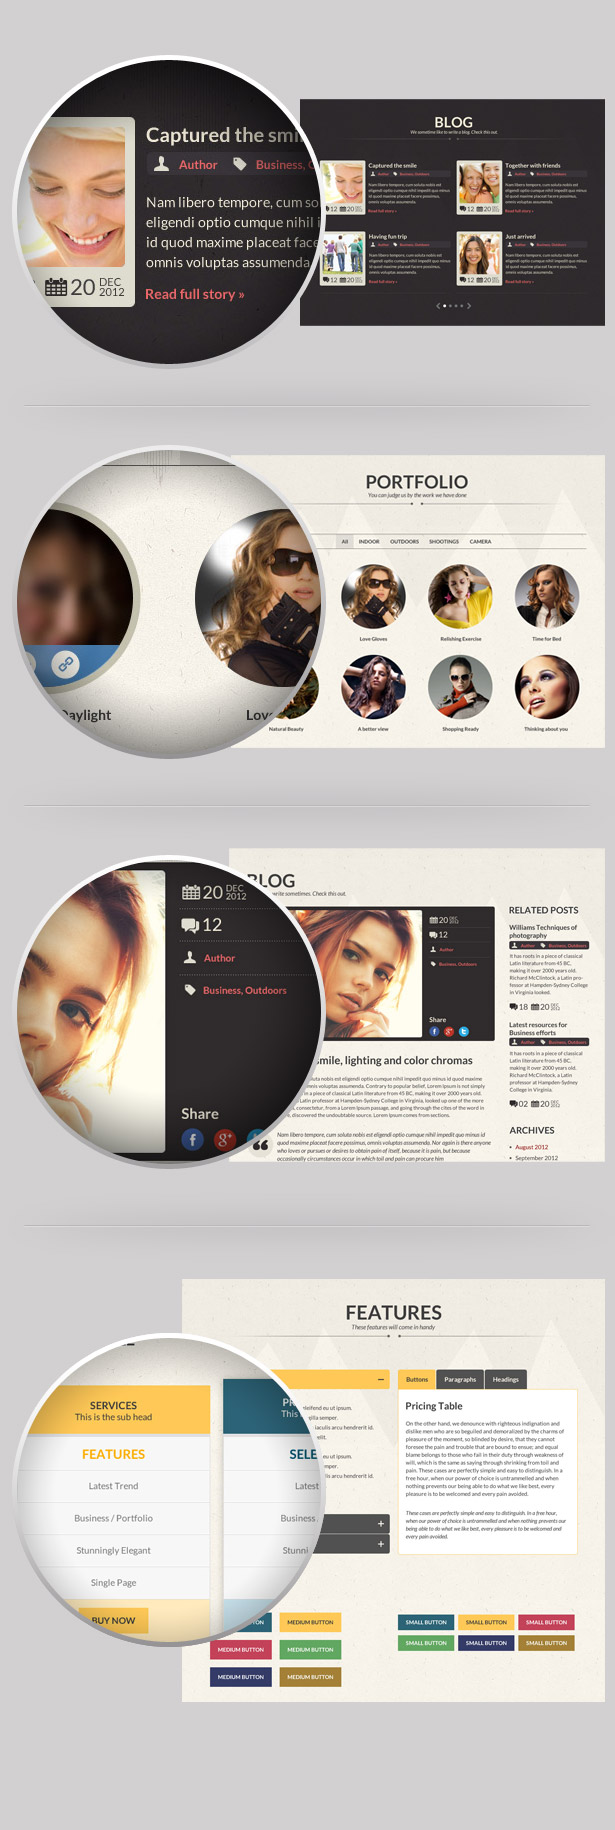 CORE - Multipurpose Single Page PSD Template